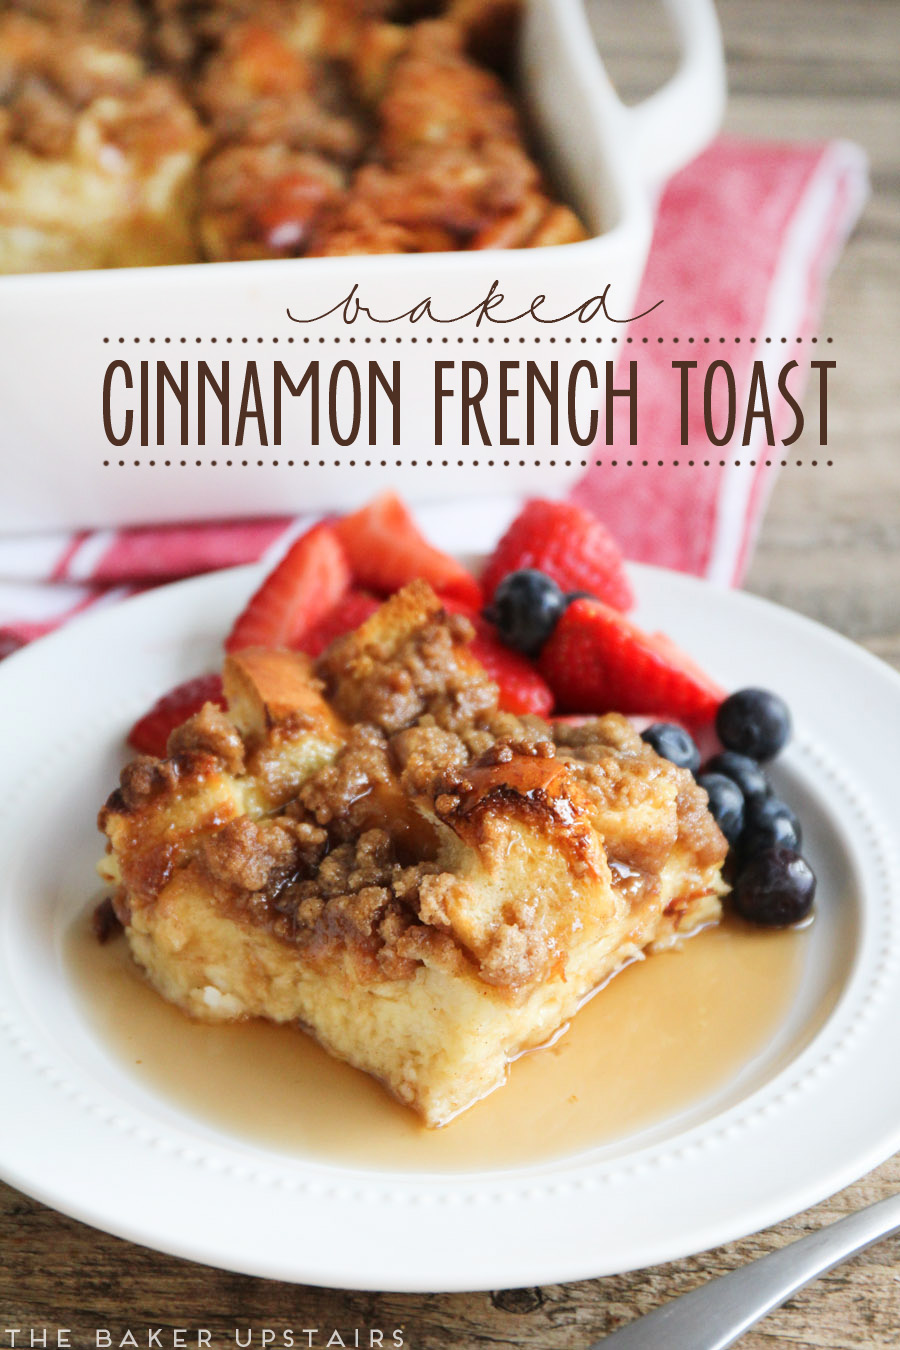 the baker upstairs: baked cinnamon french toast